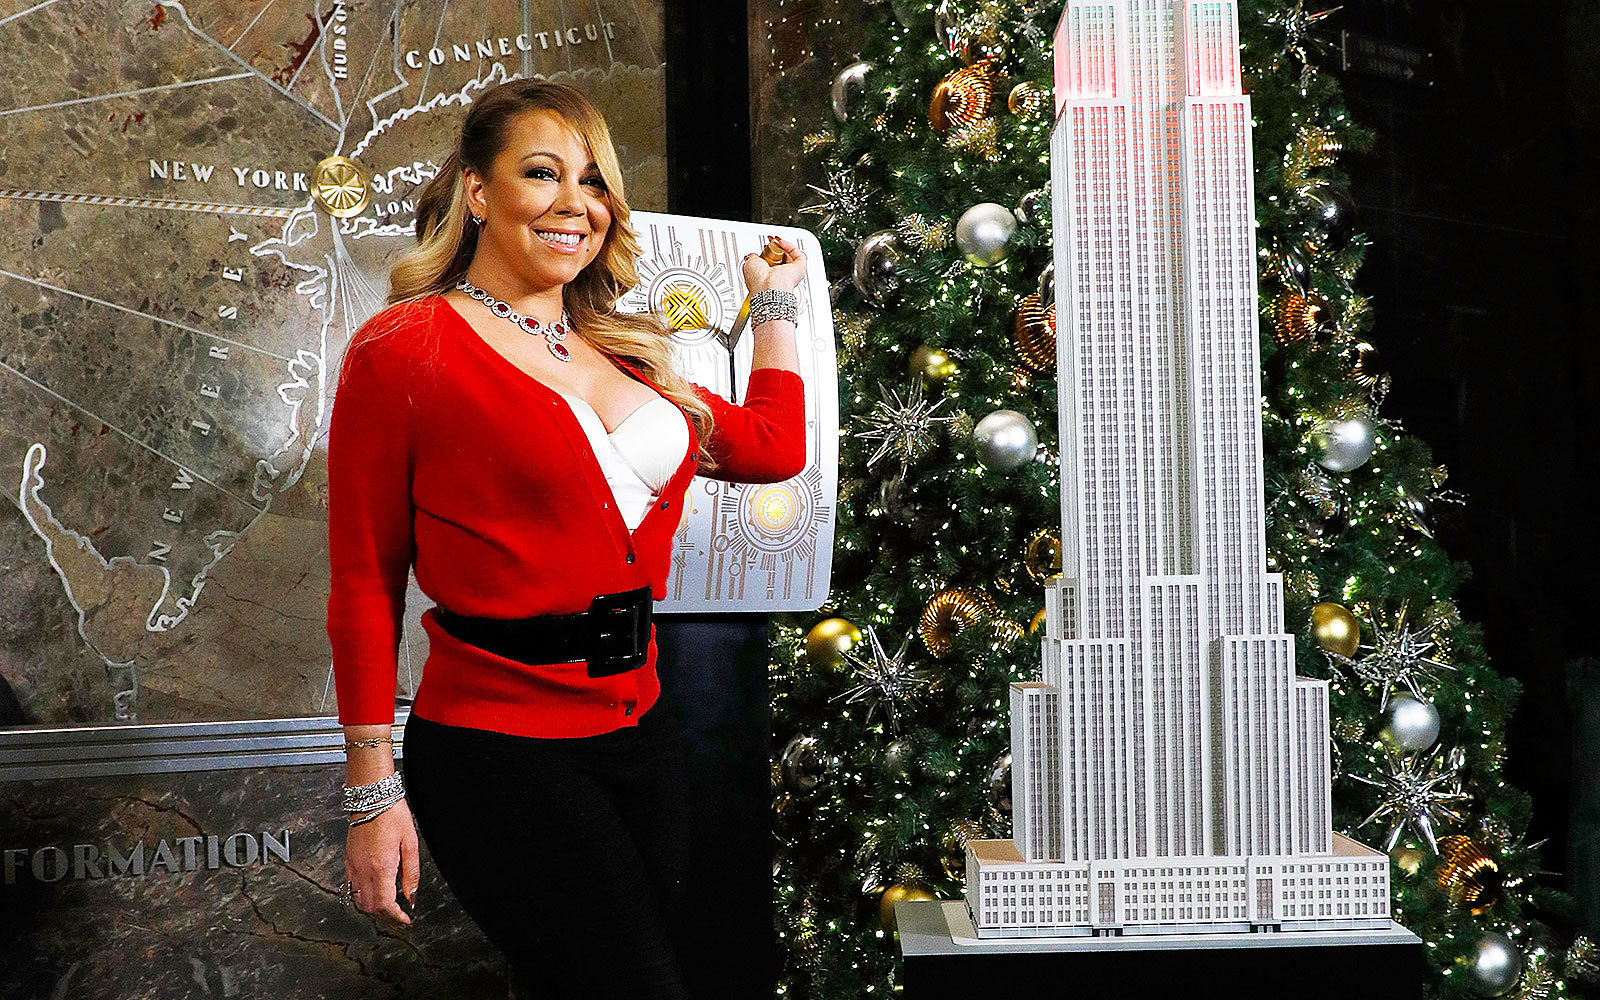 Mariah Carey Empire State Building light show